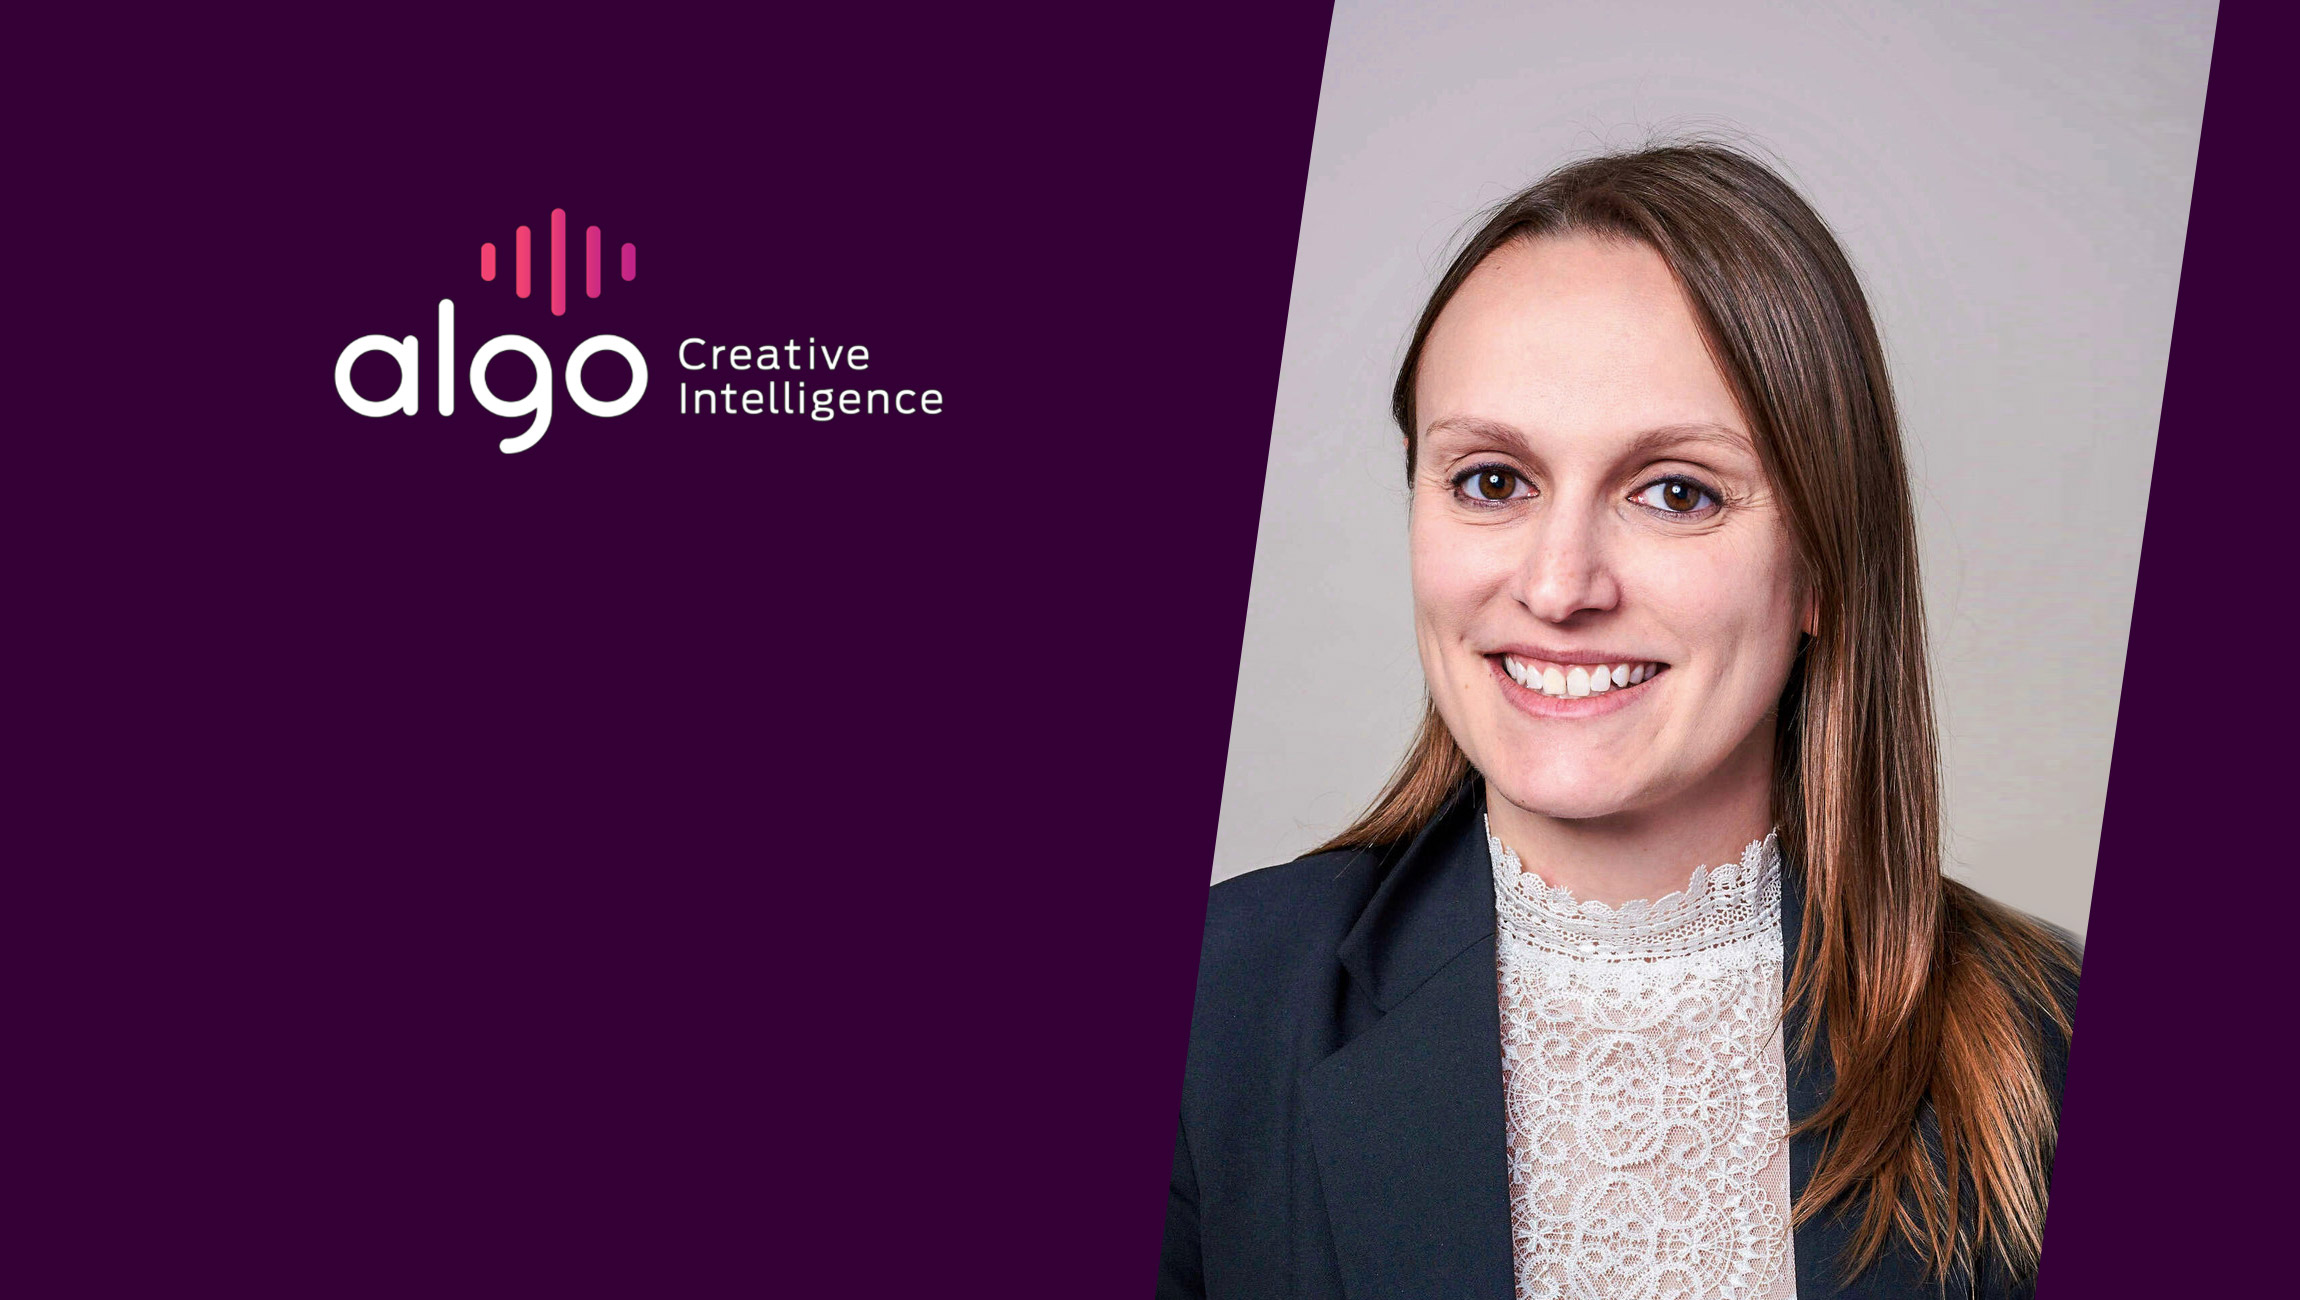 Algo Announces The Appointment Of Kate Nadolny To Its Board Of Directors